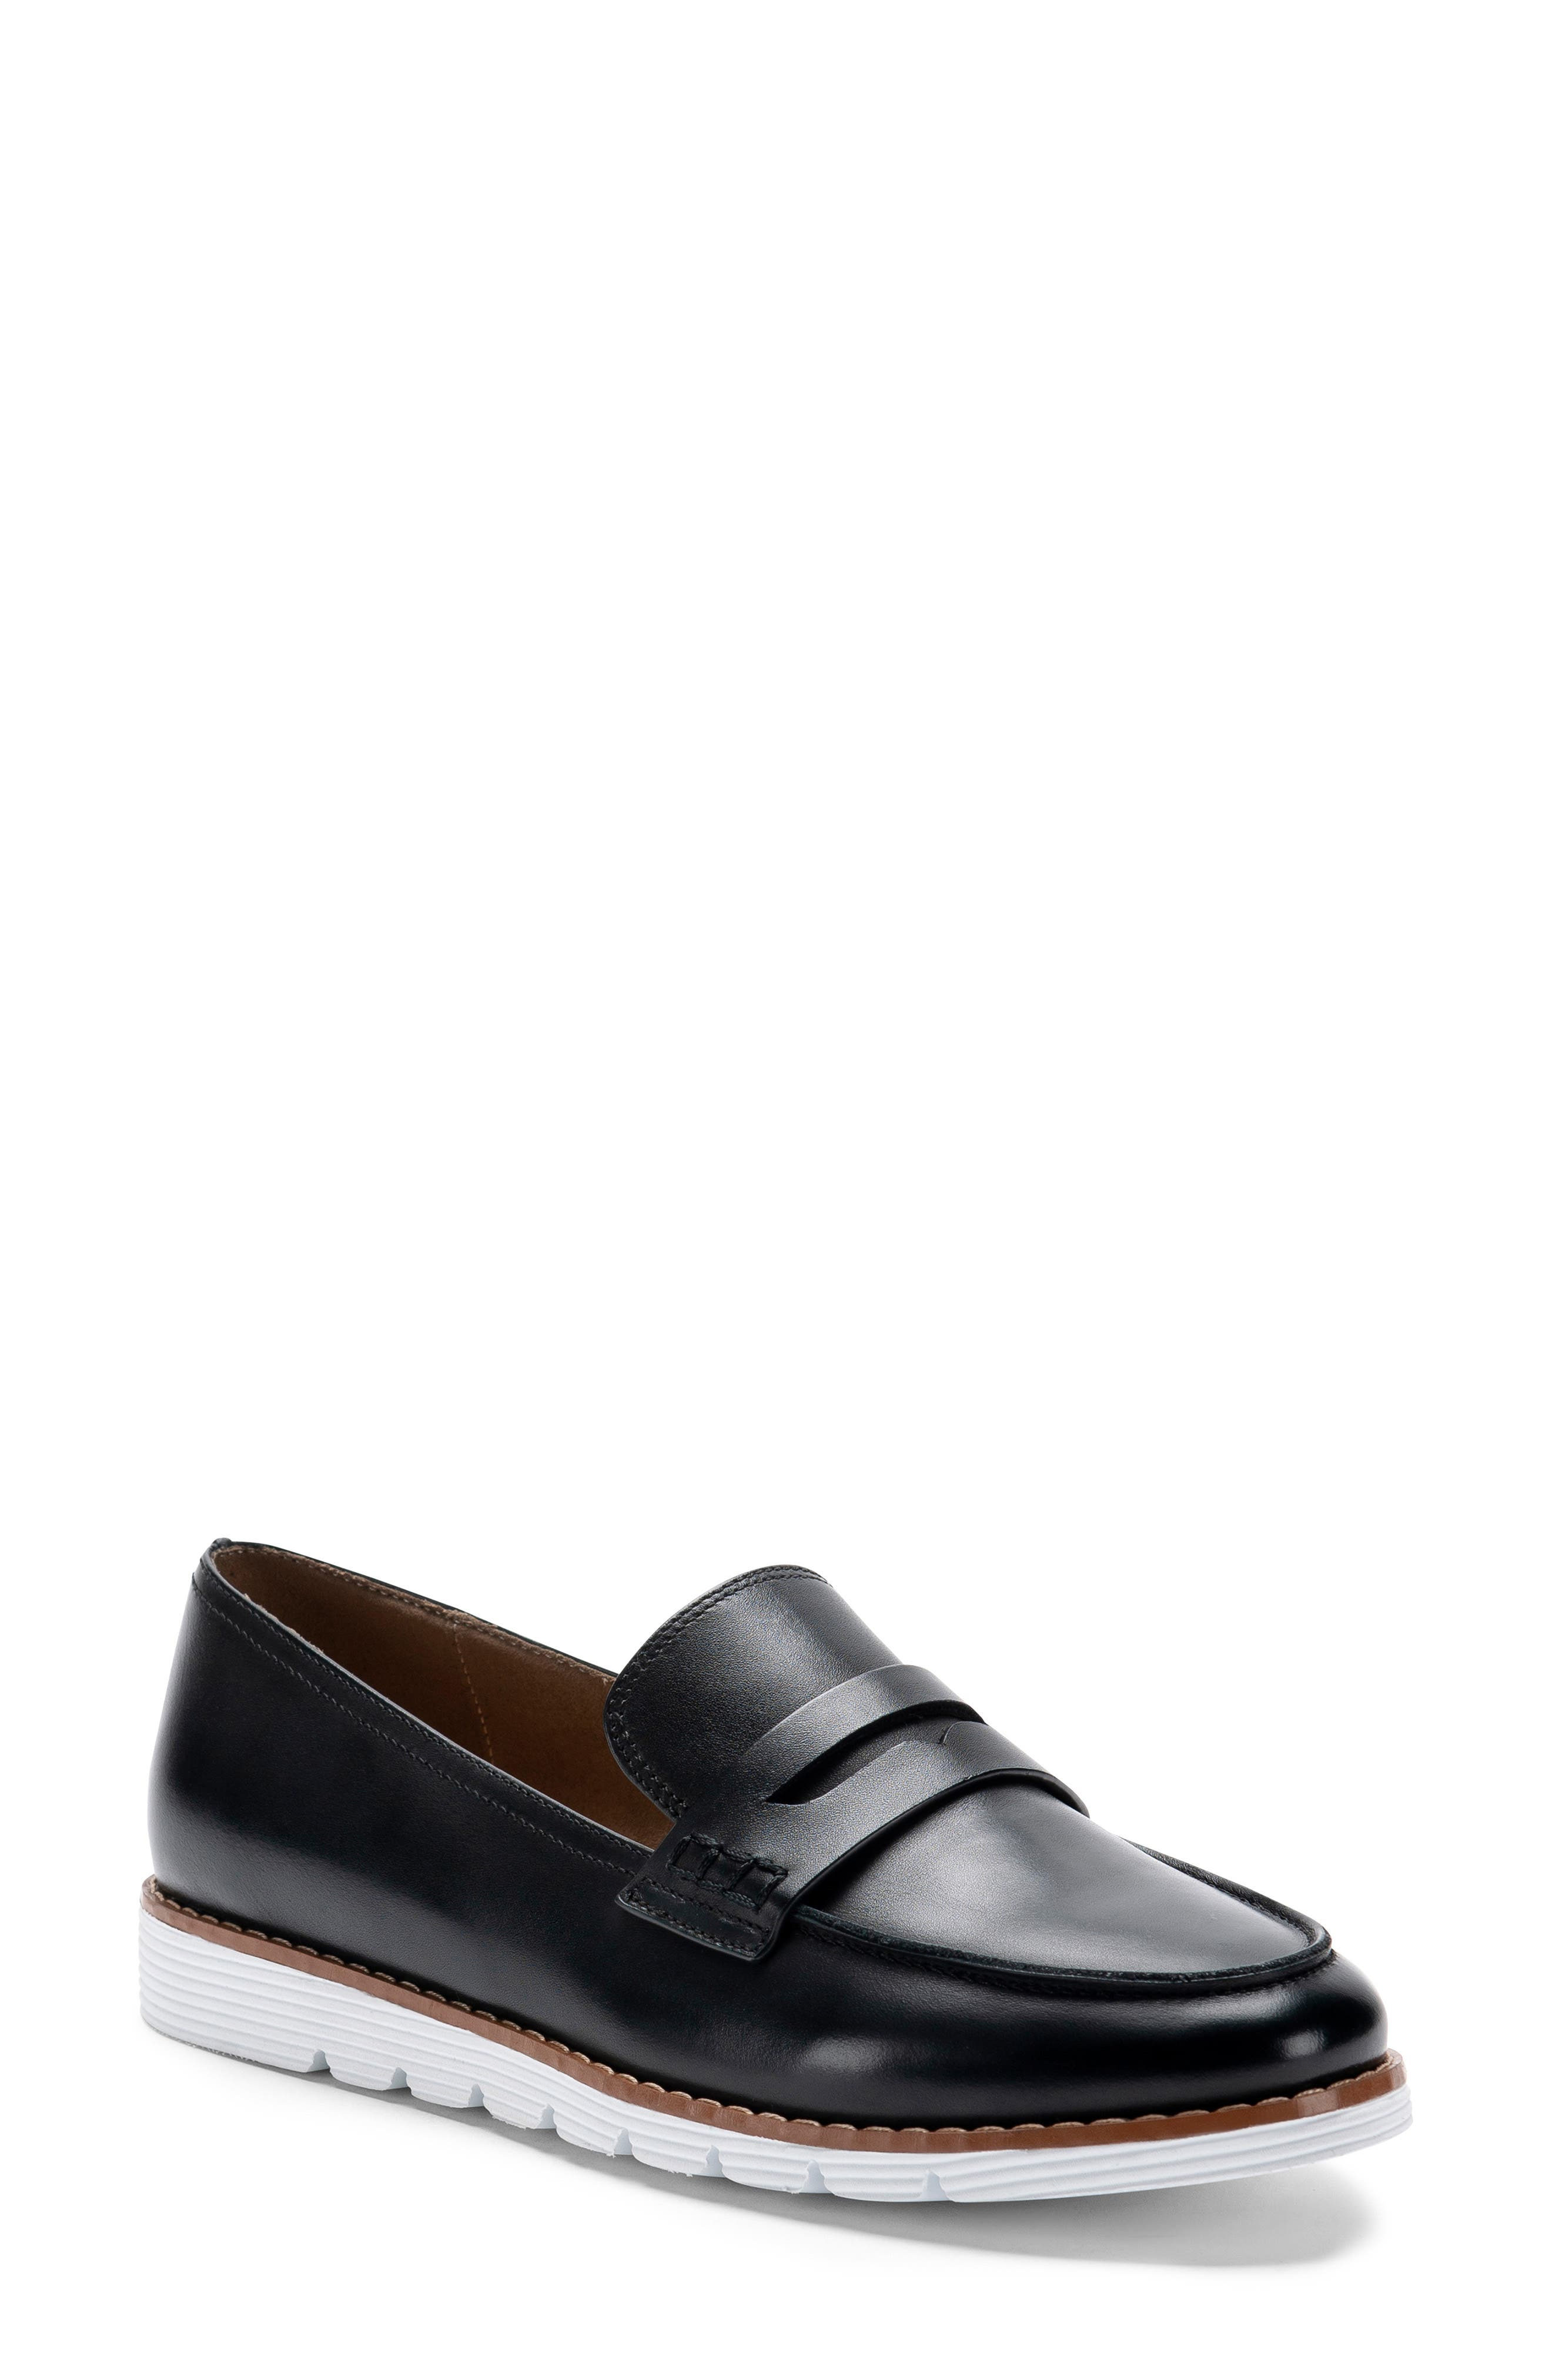 BLONDO Waterproof Penny Loafer, Main, color, BLACK LEATHER